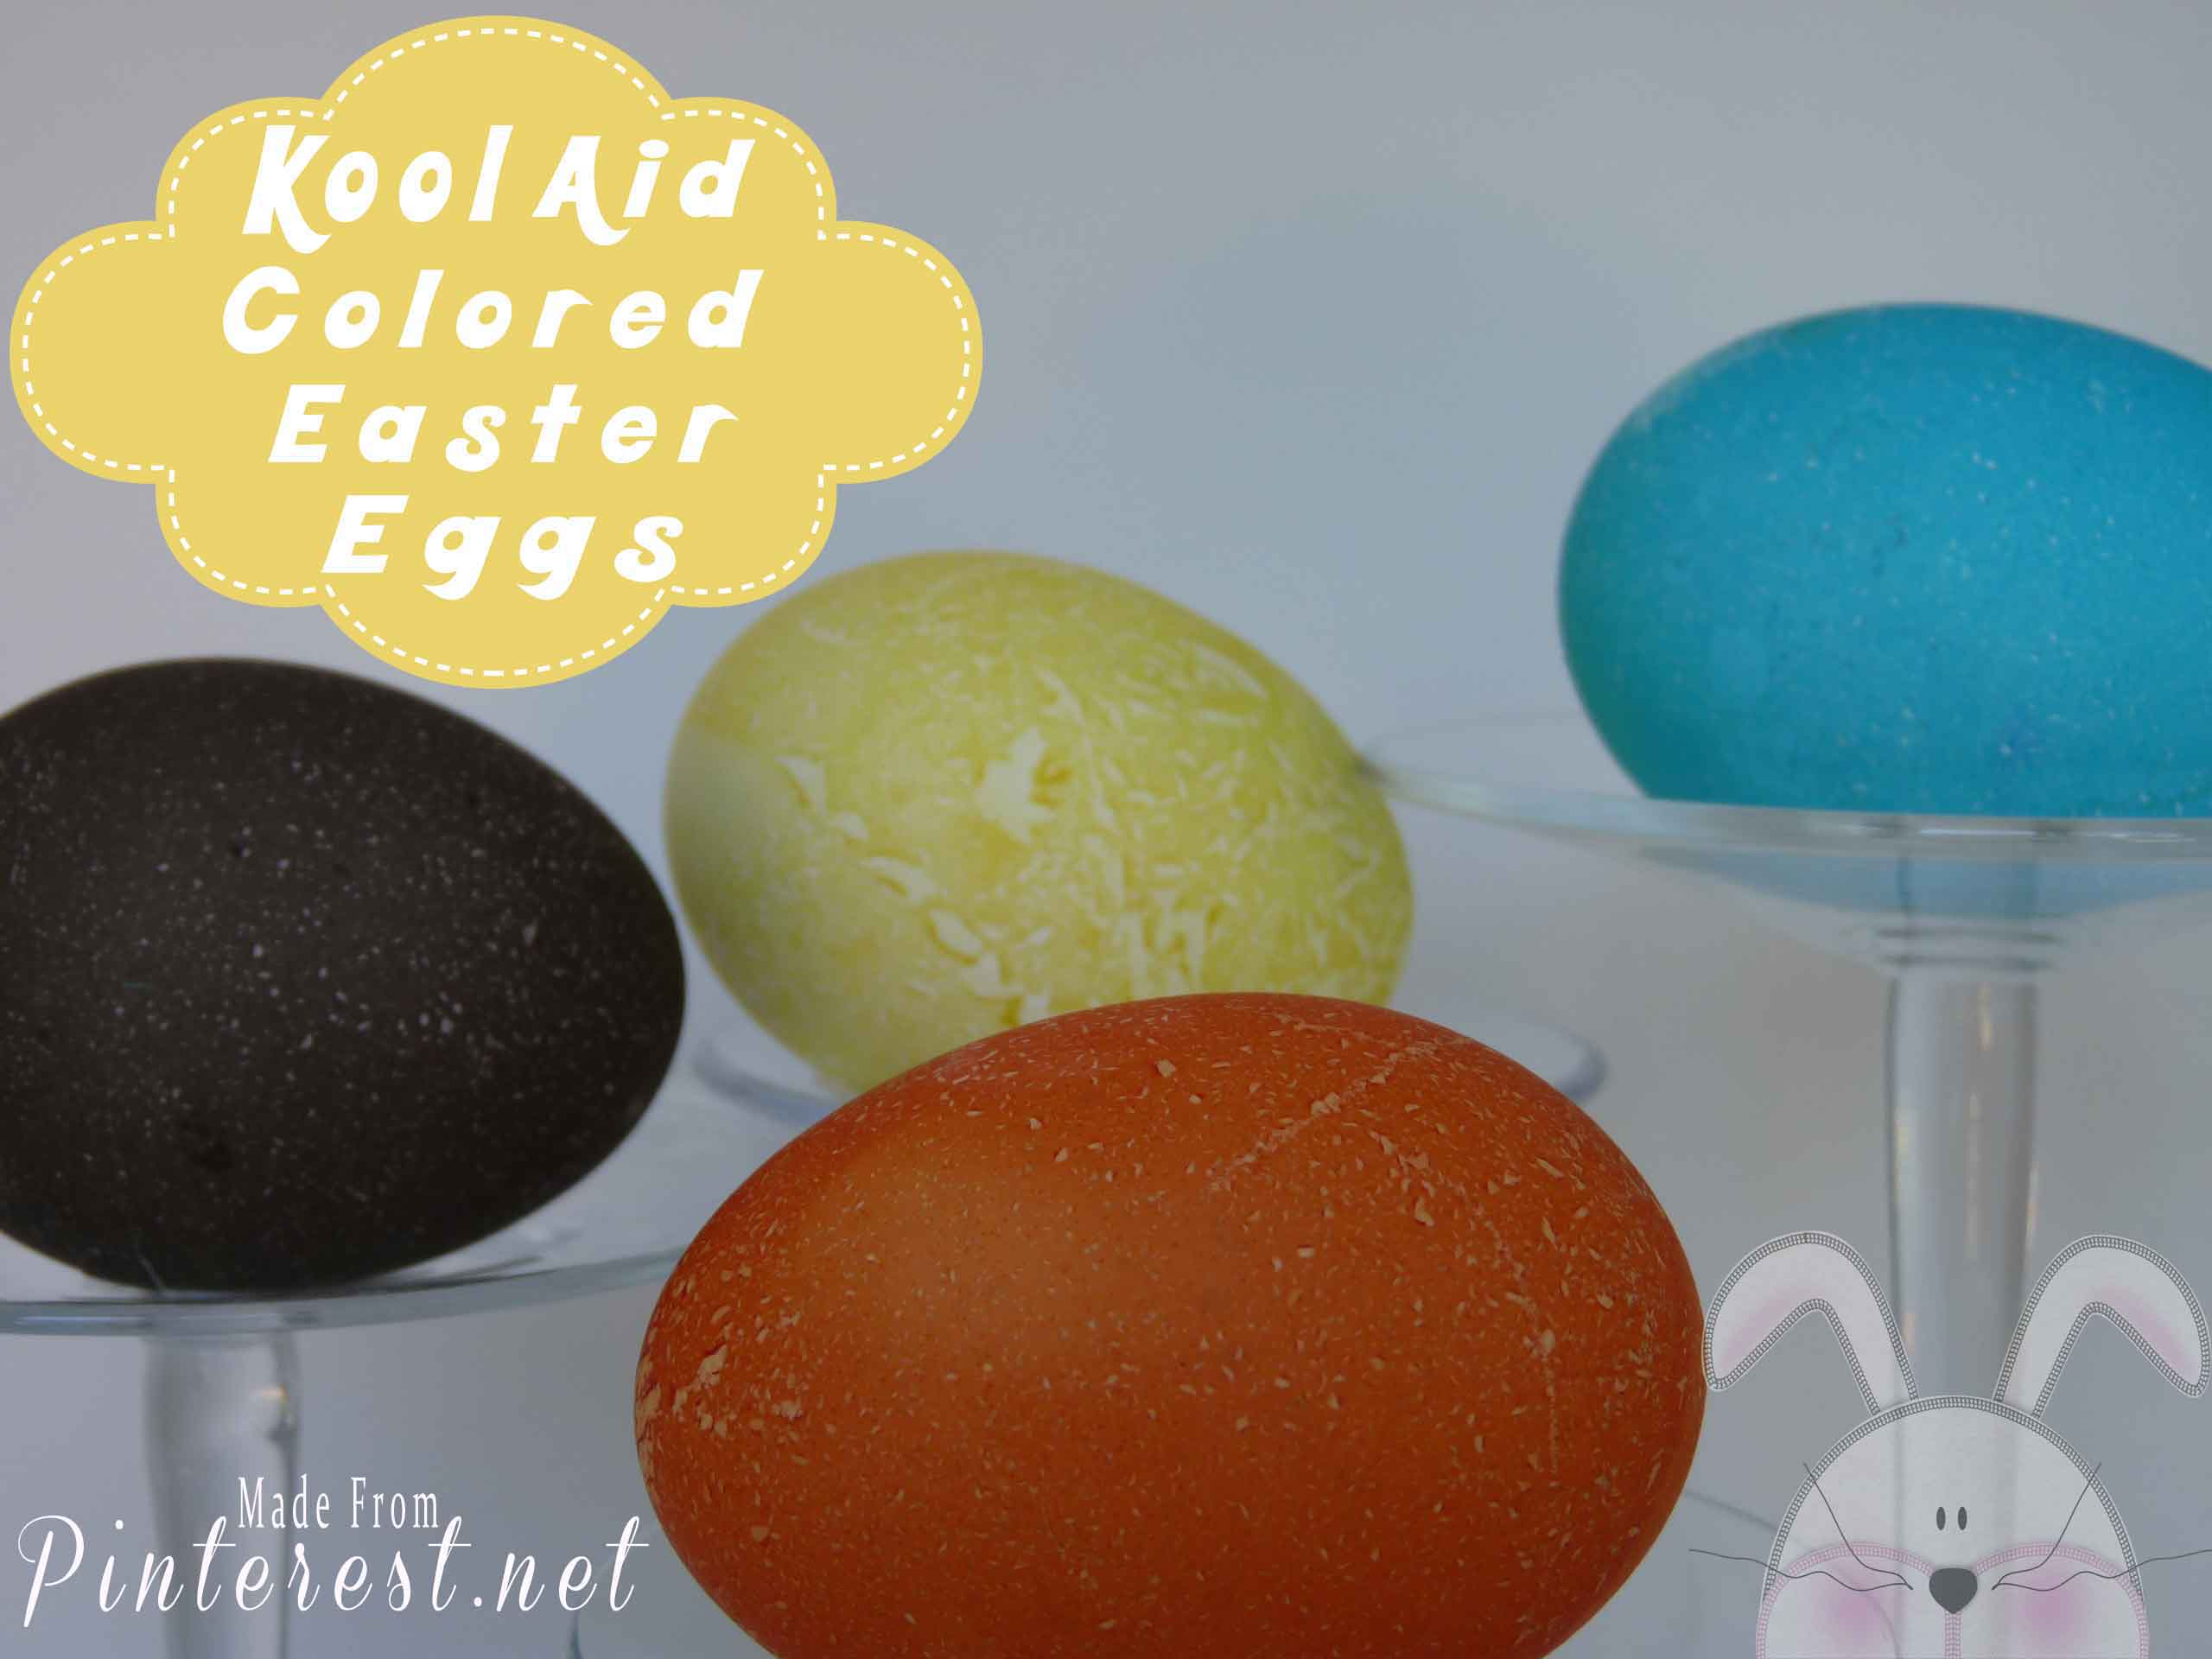 Kool Aid Colored Easter Eggs #Kool Aid Easter Eggs #Easter #Kool Aid